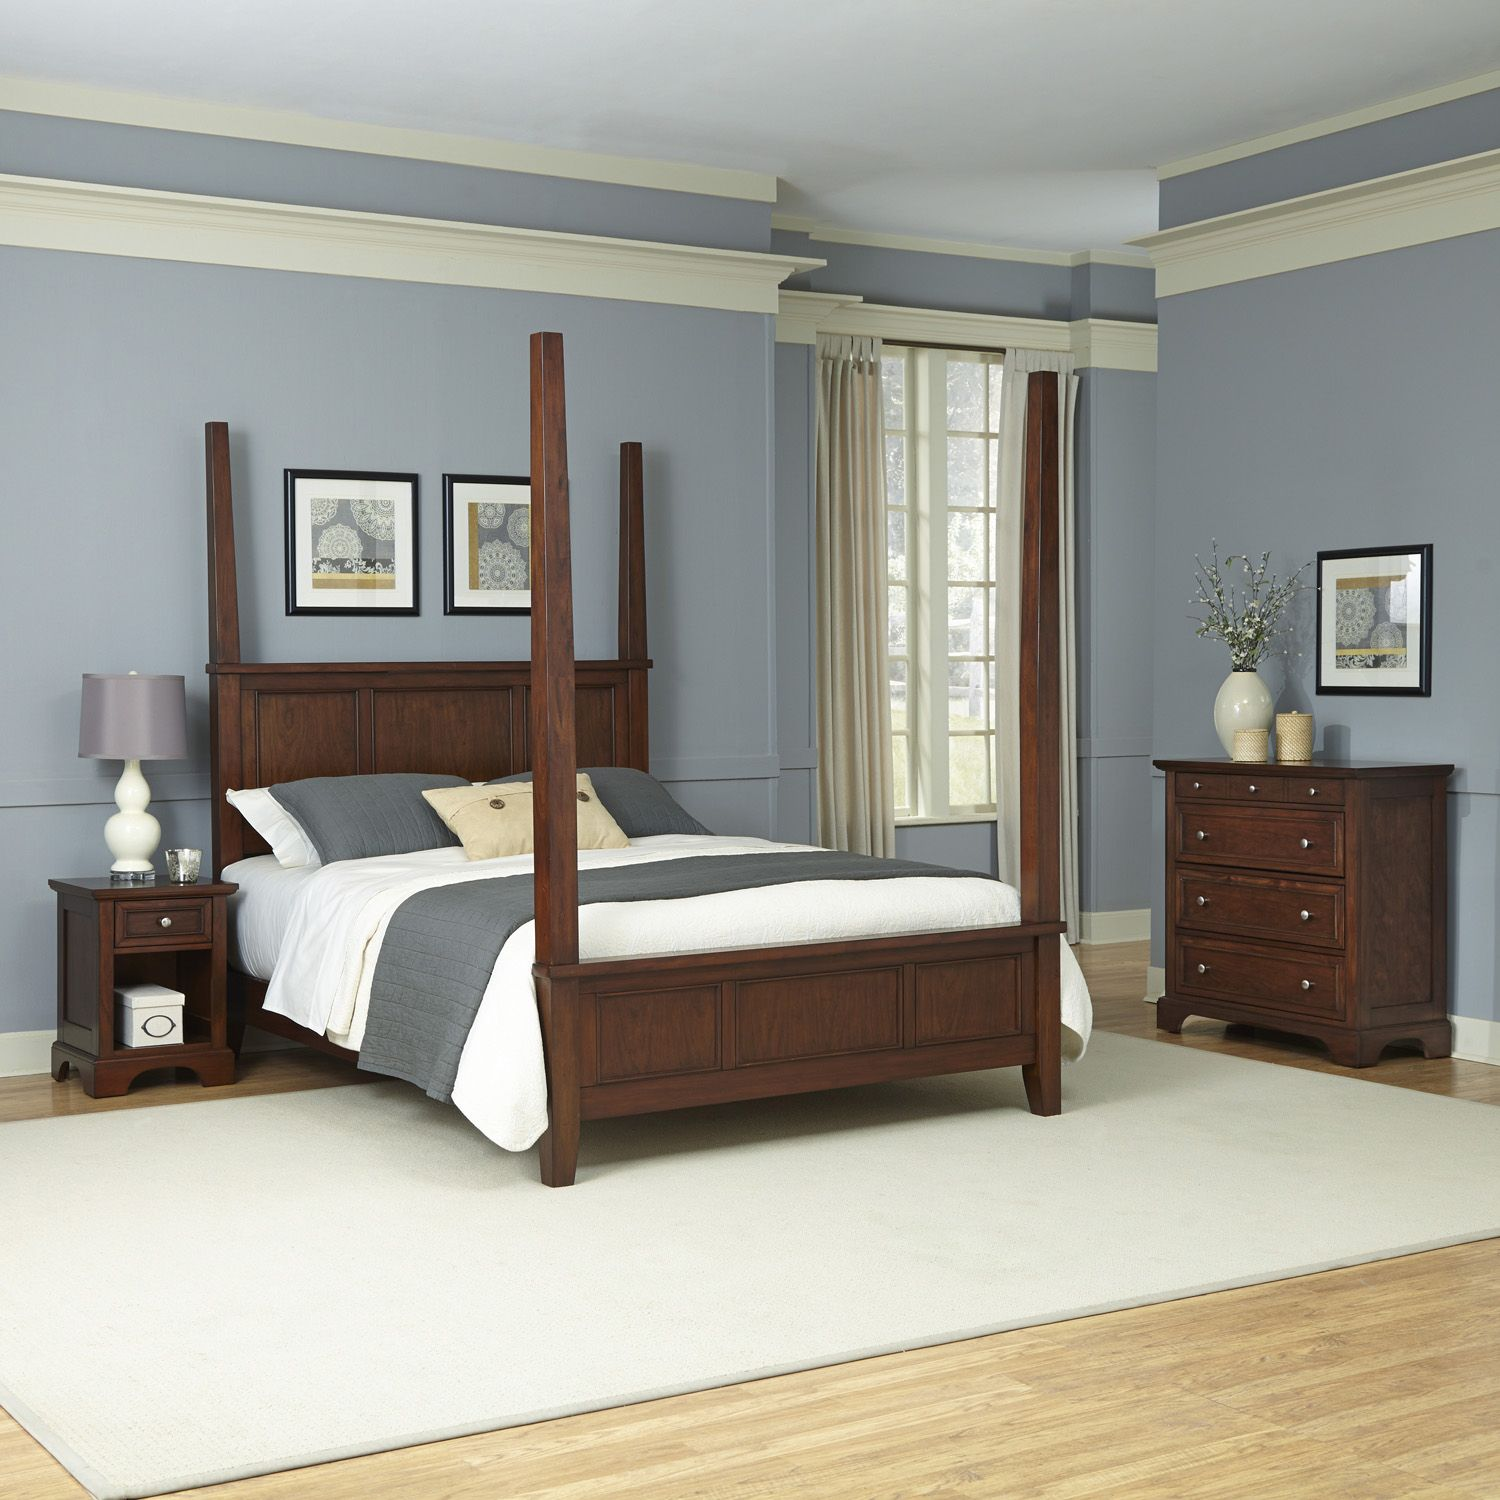 Fresh Home Styles piece Chesapeake Poster Bedroom Set